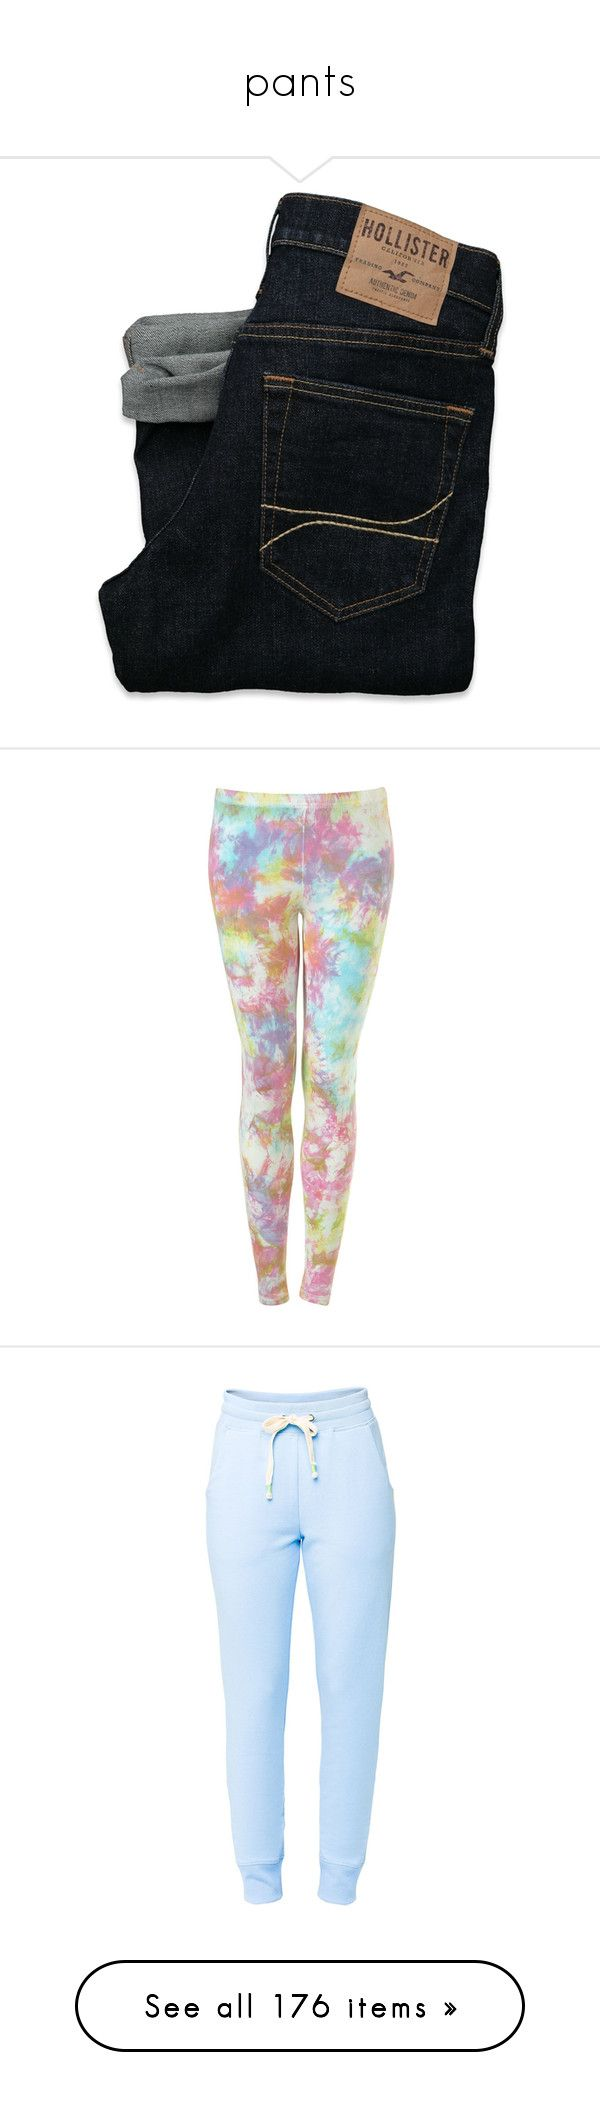 """""""pants"""" by hotlinejenn ❤ liked on Polyvore featuring men's fashion, men's clothing, men's jeans, pants, jeans, bottoms, men, mens skinny fit jeans, mens skinny jeans and mens super skinny jeans"""